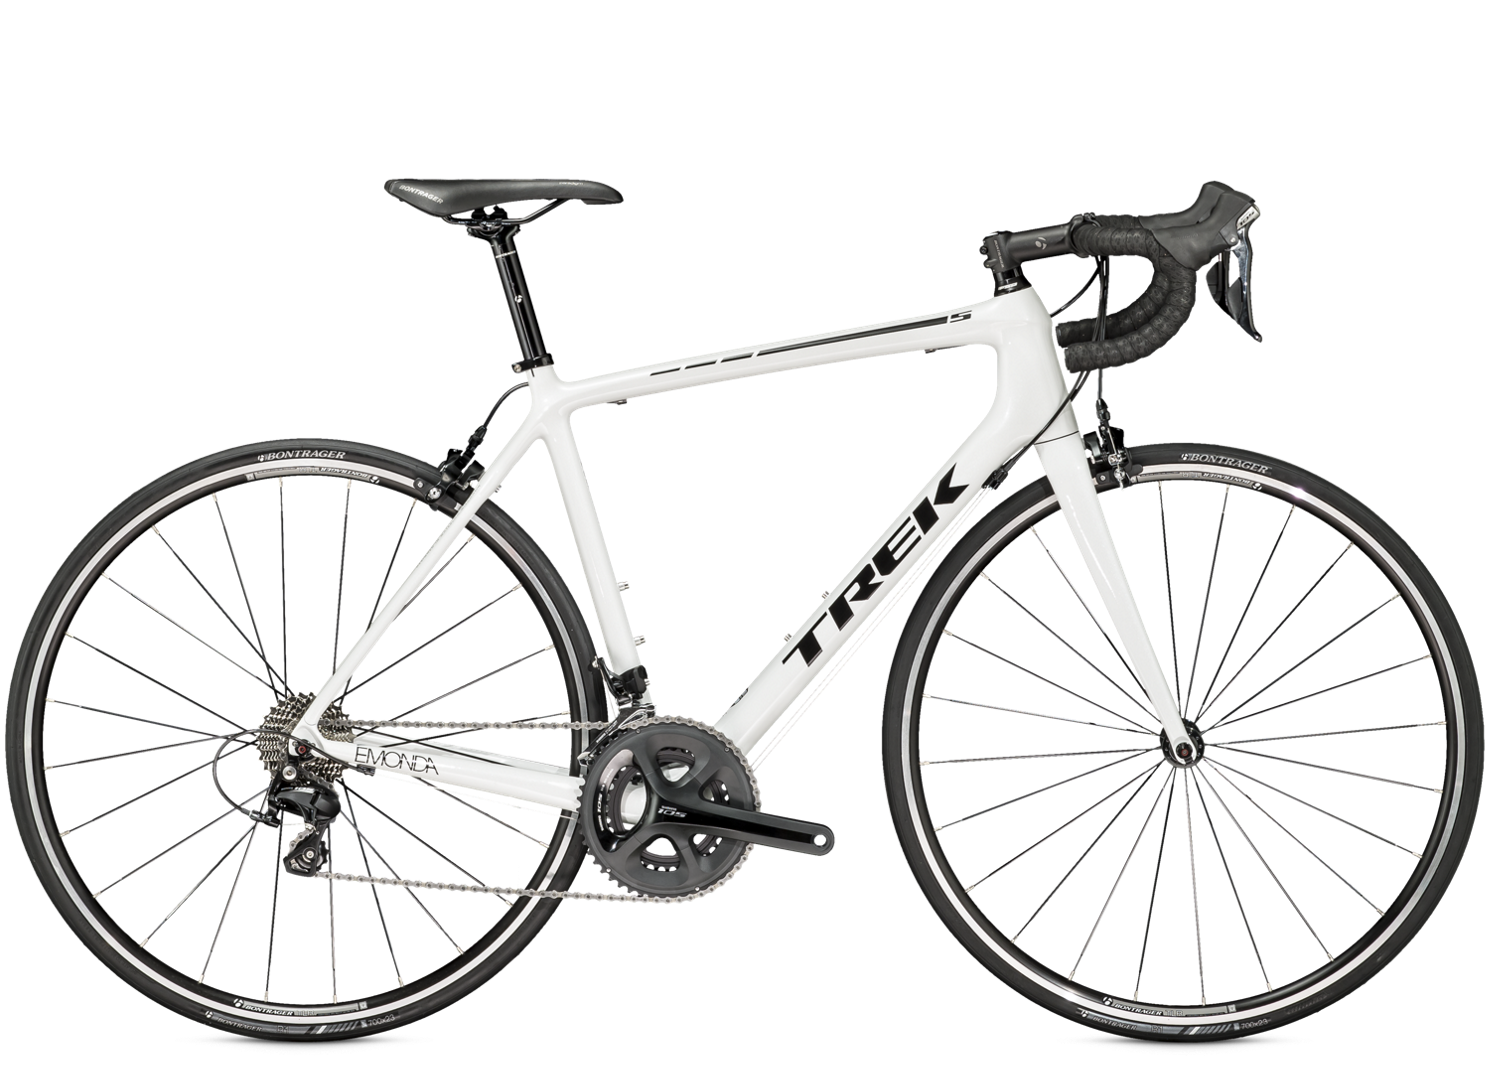 d9d1a26af5d 2015 Émonda S 5 - Bike Archive - Trek Bicycle